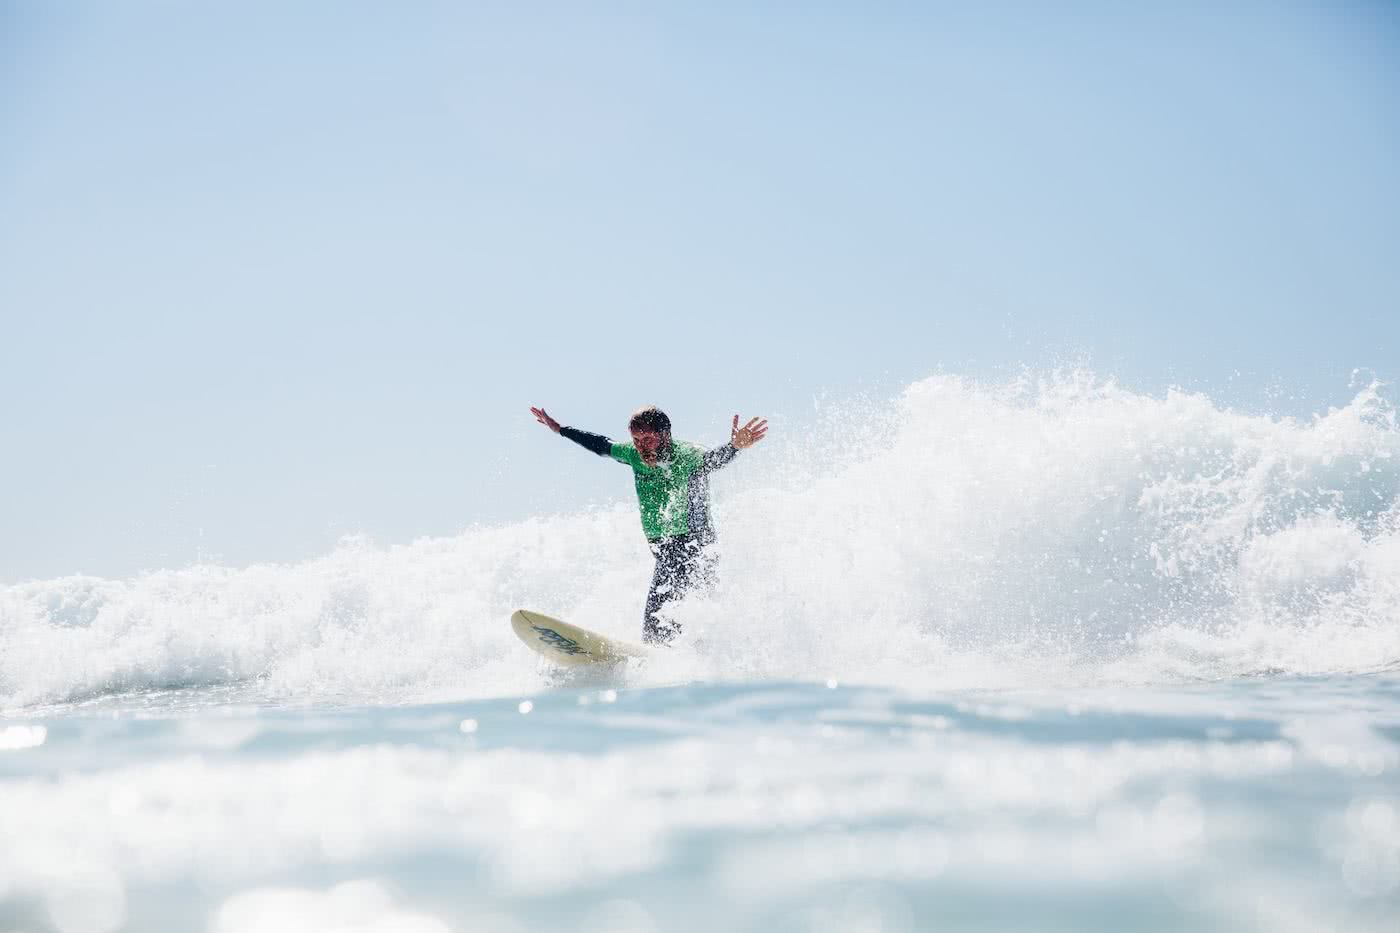 Get Barrelled For Good // Sign Up For The SurfAid Cup, surfboard, wave, whitewash, stoke